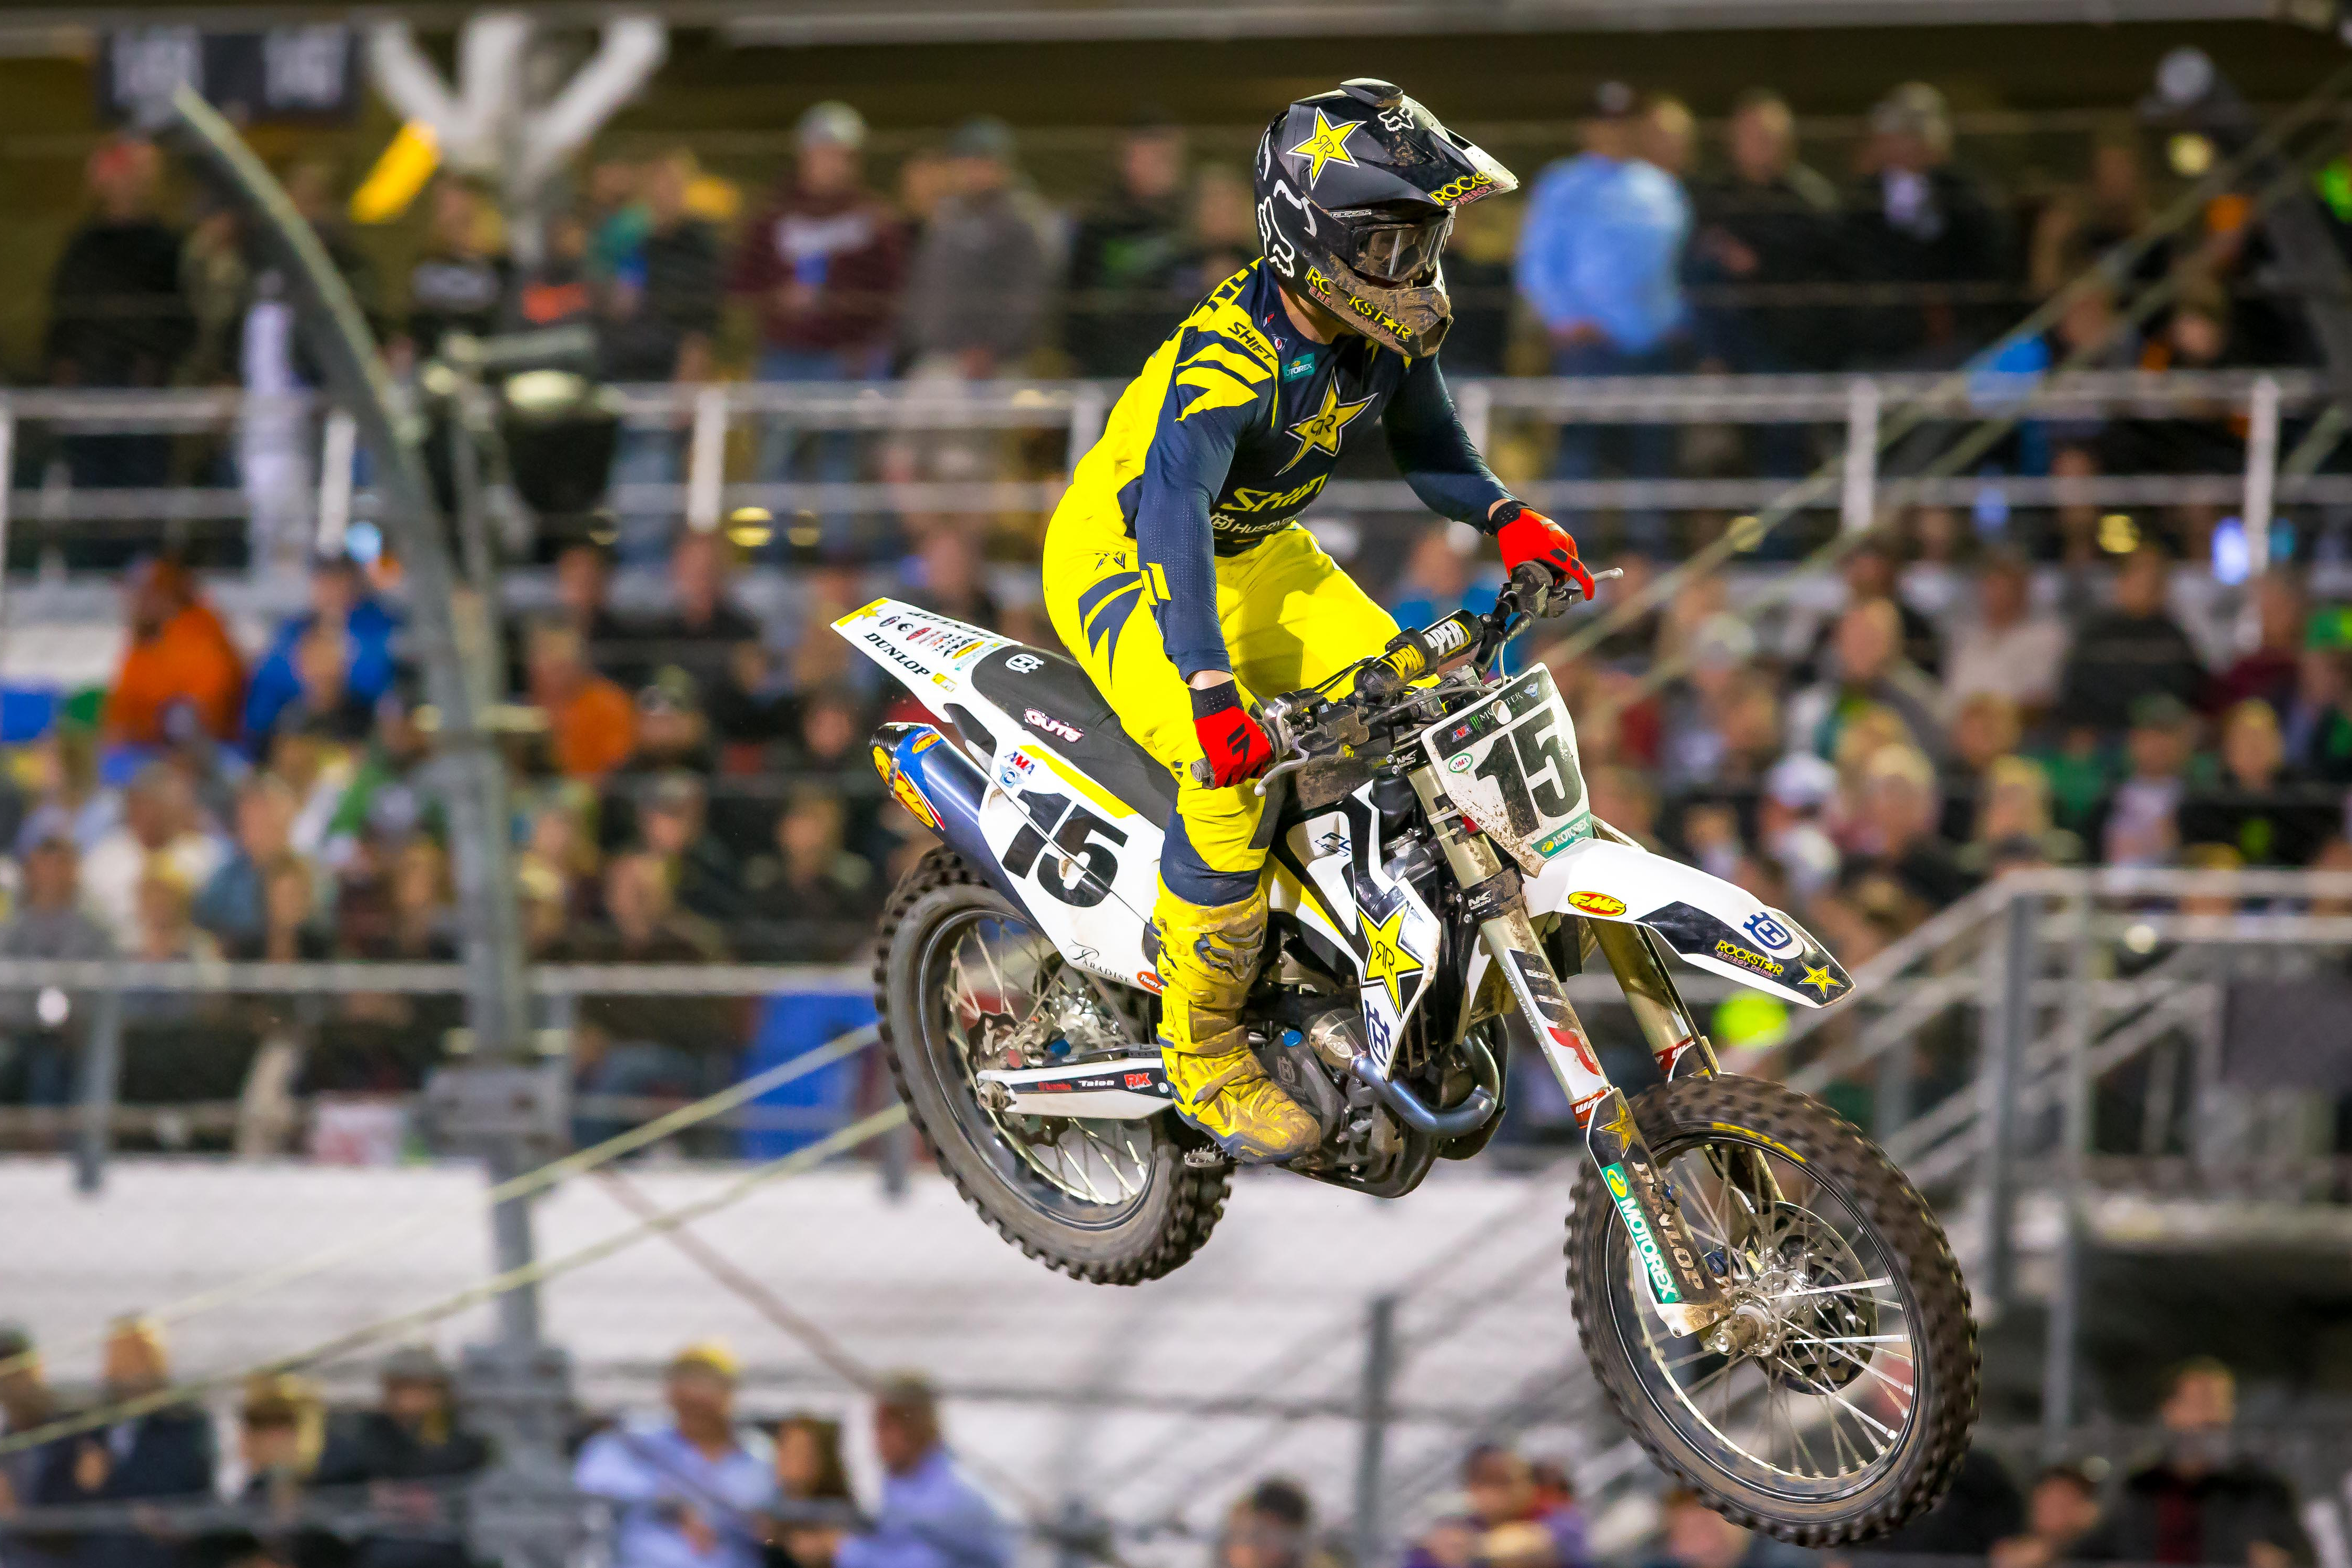 Daytona Supercross - Dean Wilson had his best qualifying session of the season and finished 8th